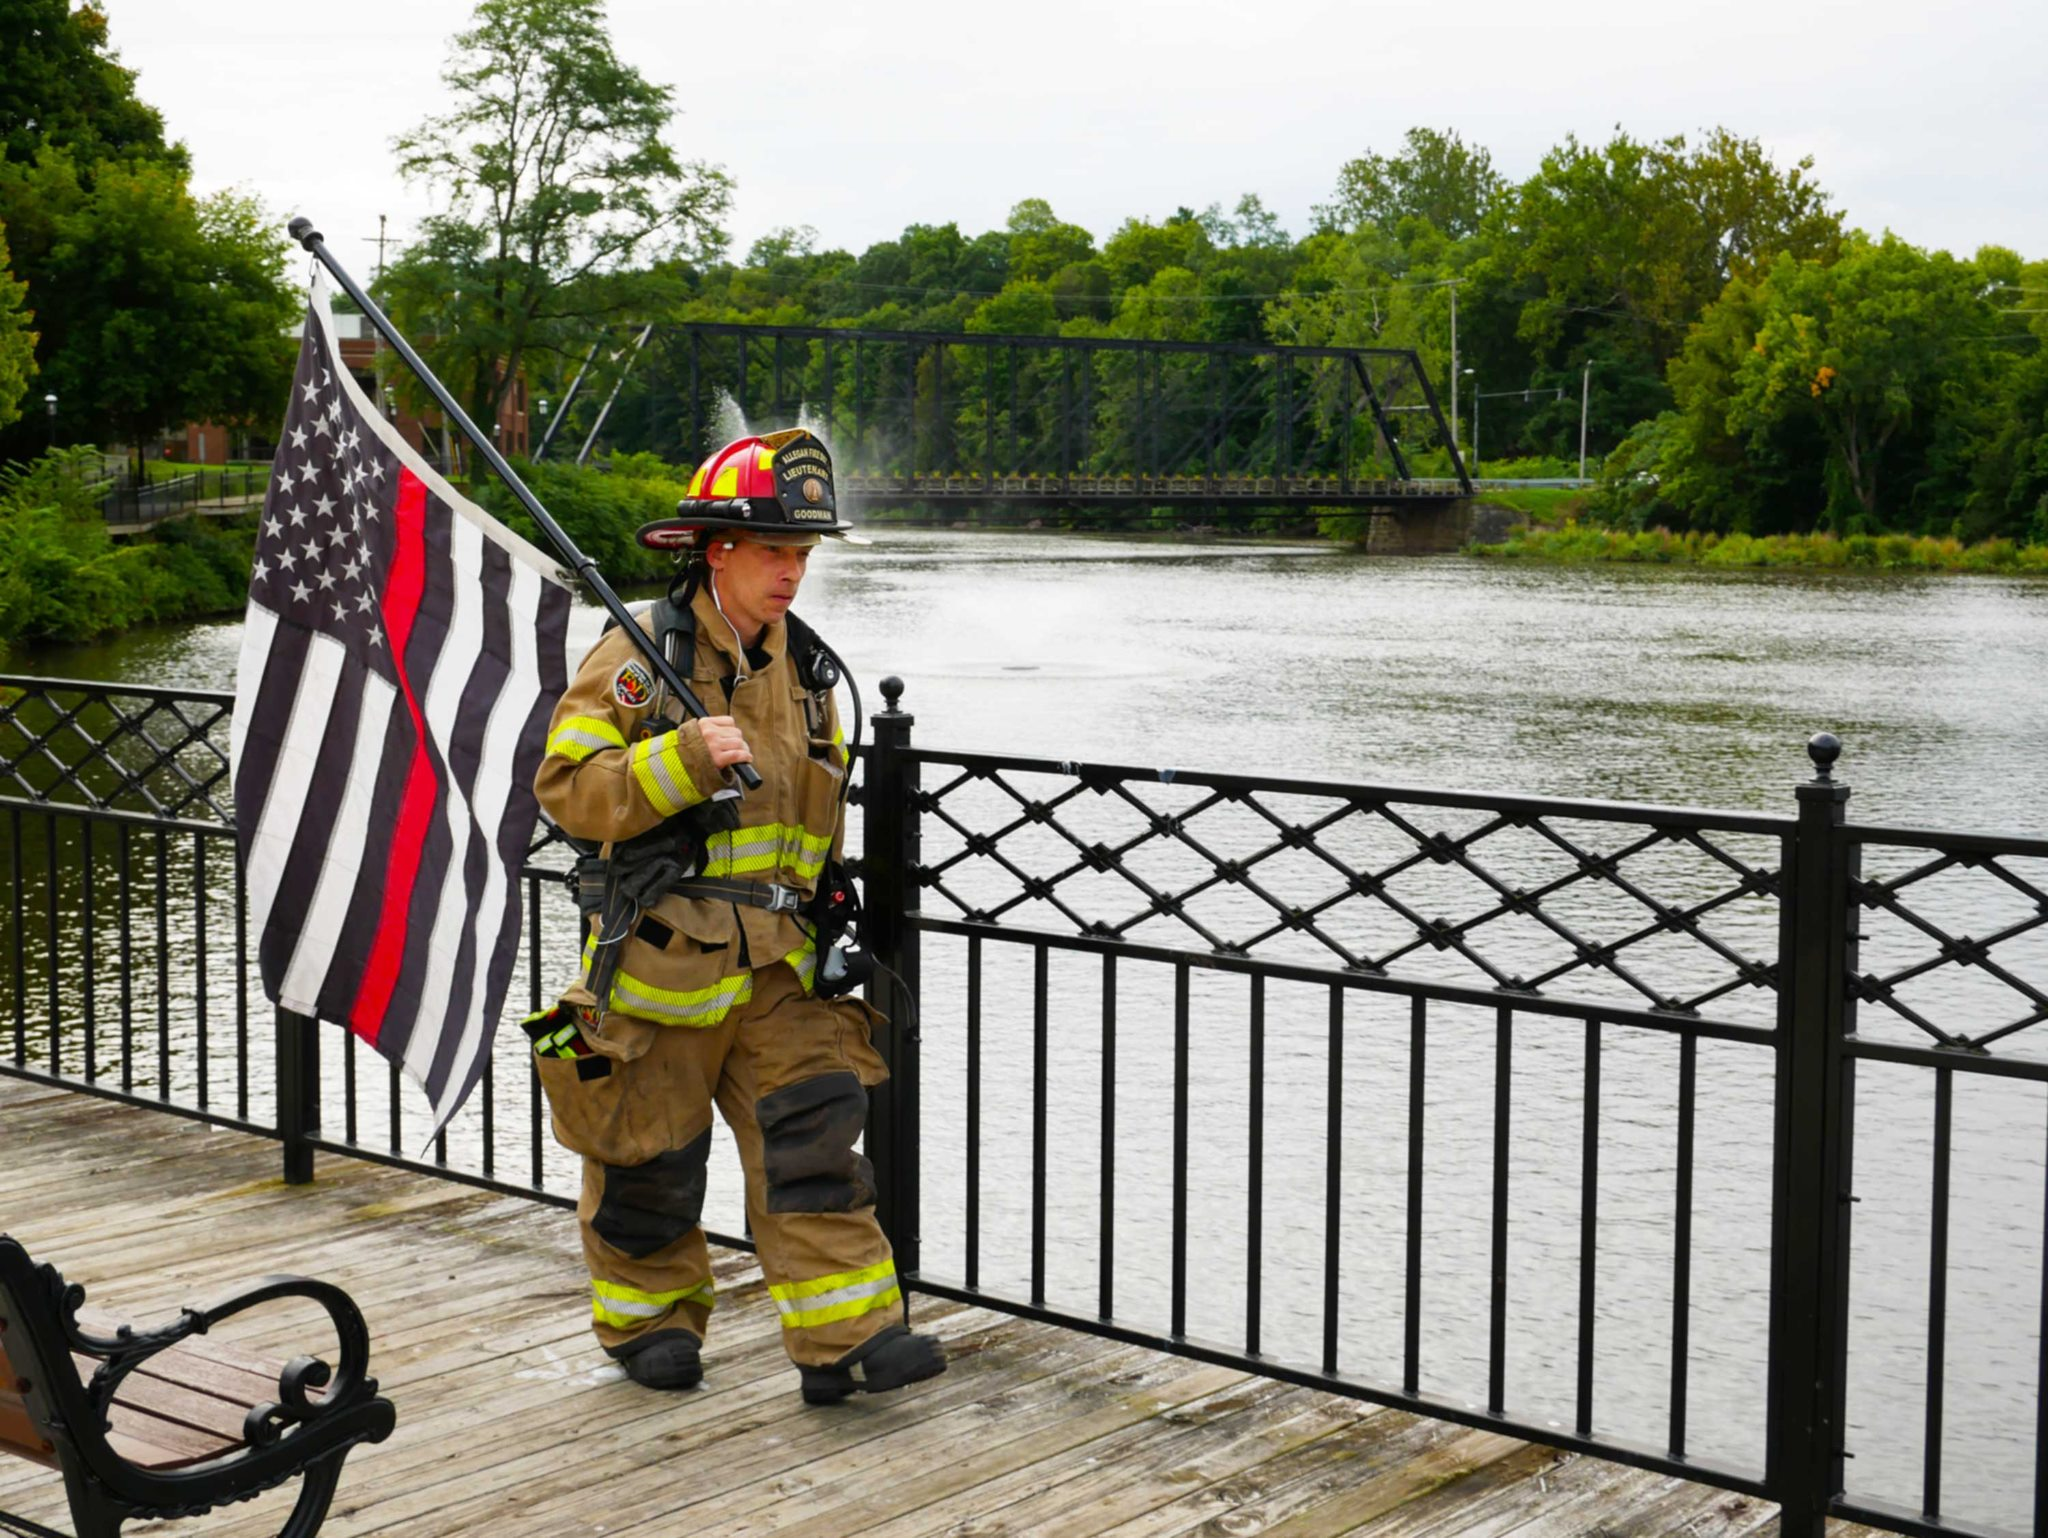 Allegan Fire Department Lieutenant Chris Goodman walking the streets on September 11, 2020. With full turnout gear and an american flag with a red stripe, he walked downtown Allegan, in remembrance of those that died on September 11, 2001. (WWMT/Felicia Belden)